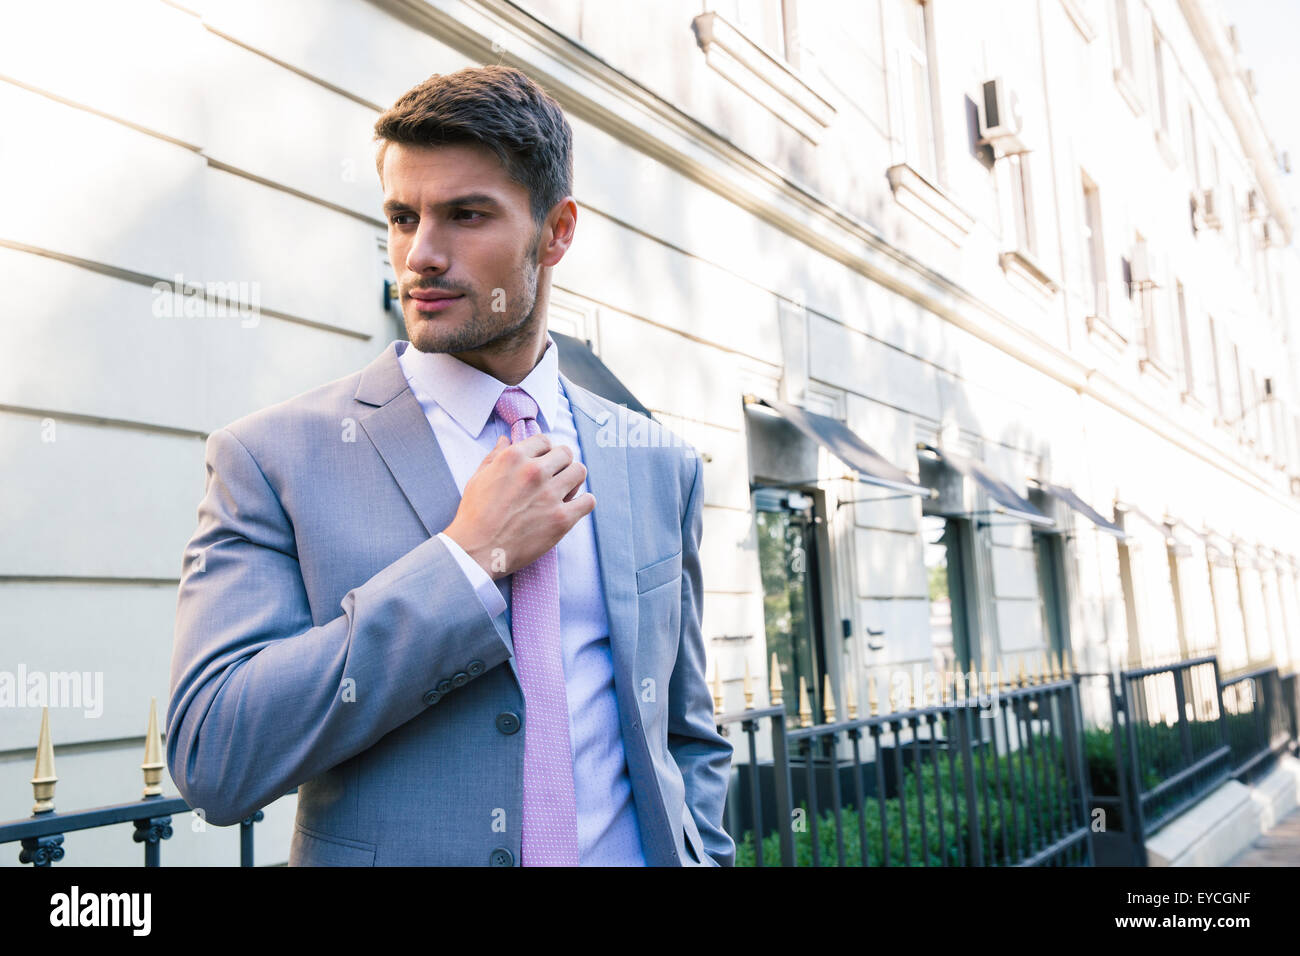 Confident businessman straightens his tie outdoors - Stock Image